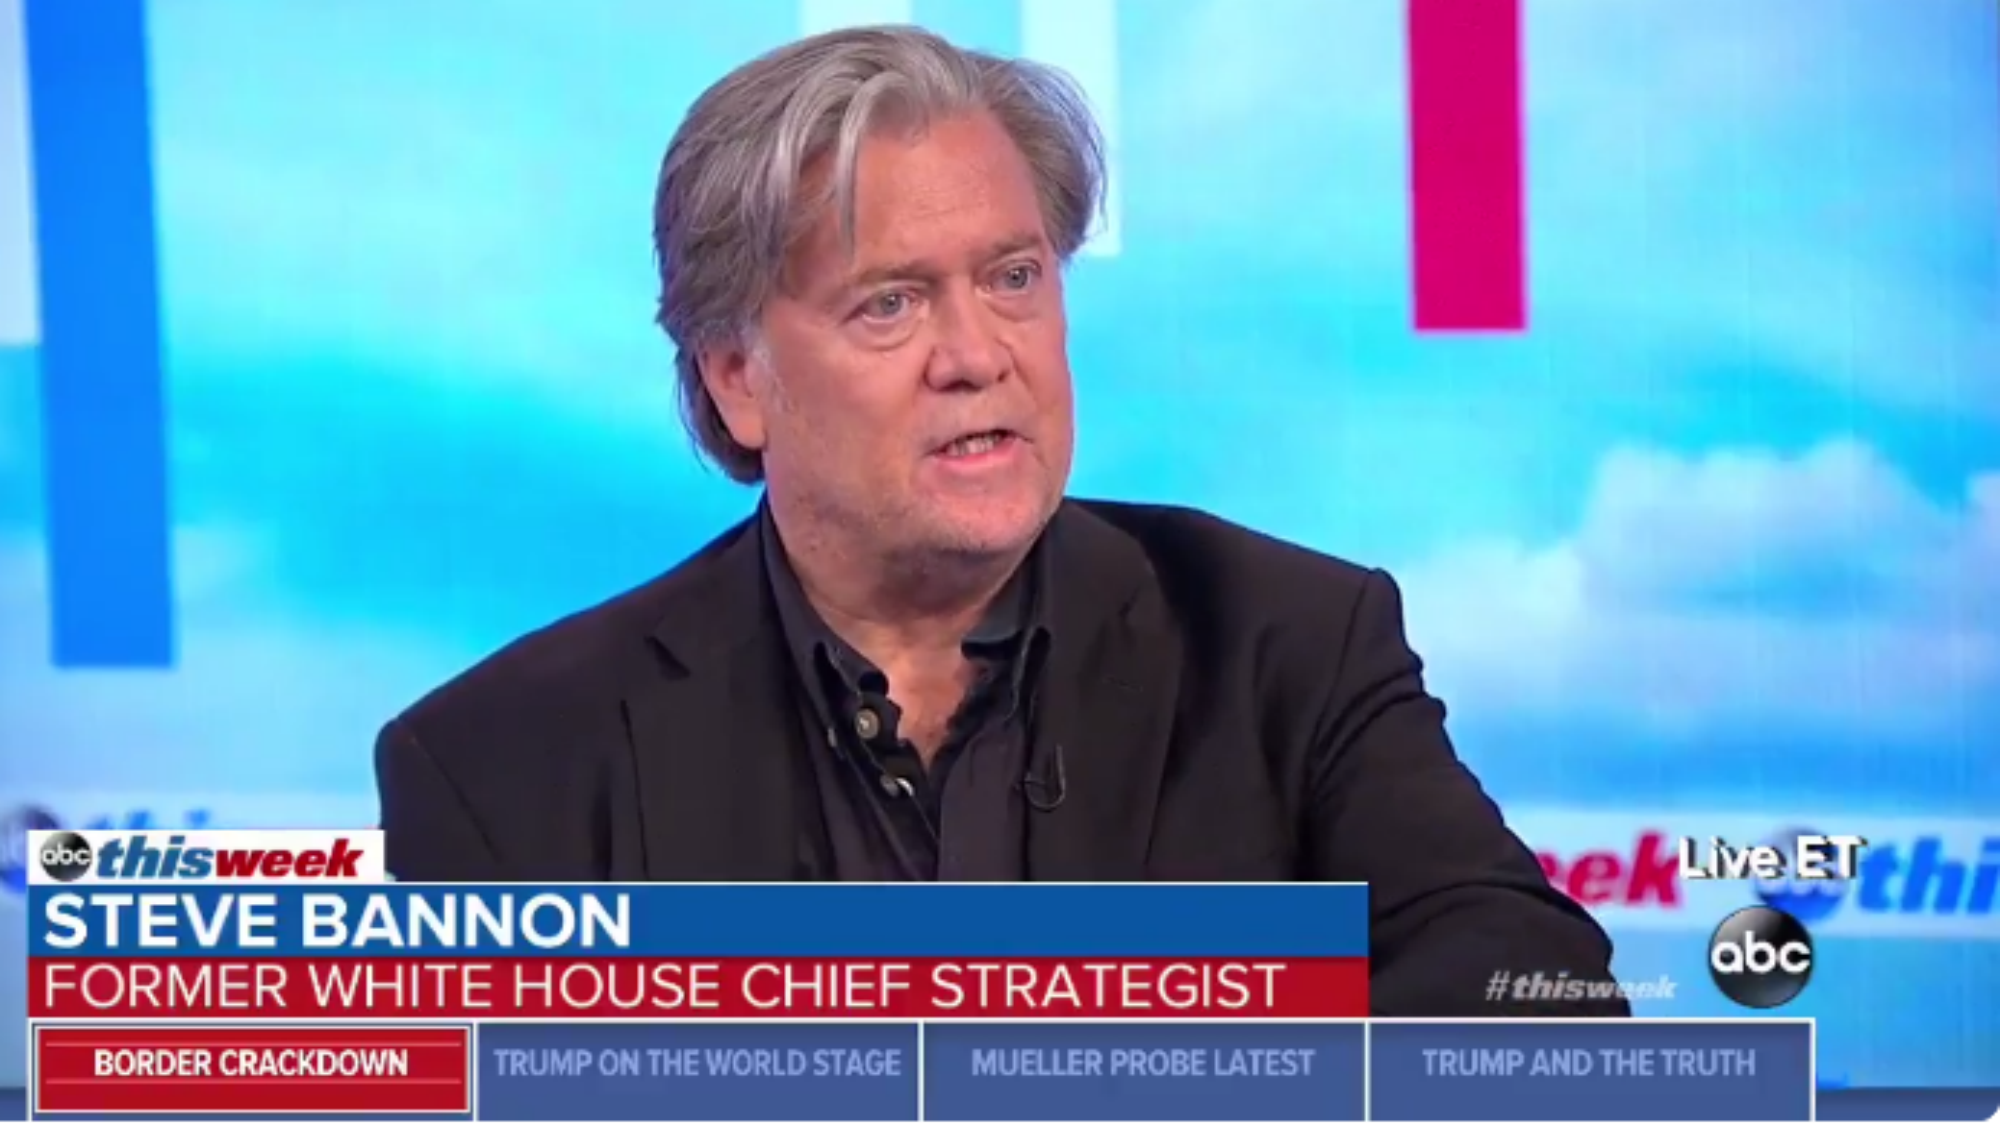 Bannon on migrant family separation: Zero tolerance doesn't have to be justified